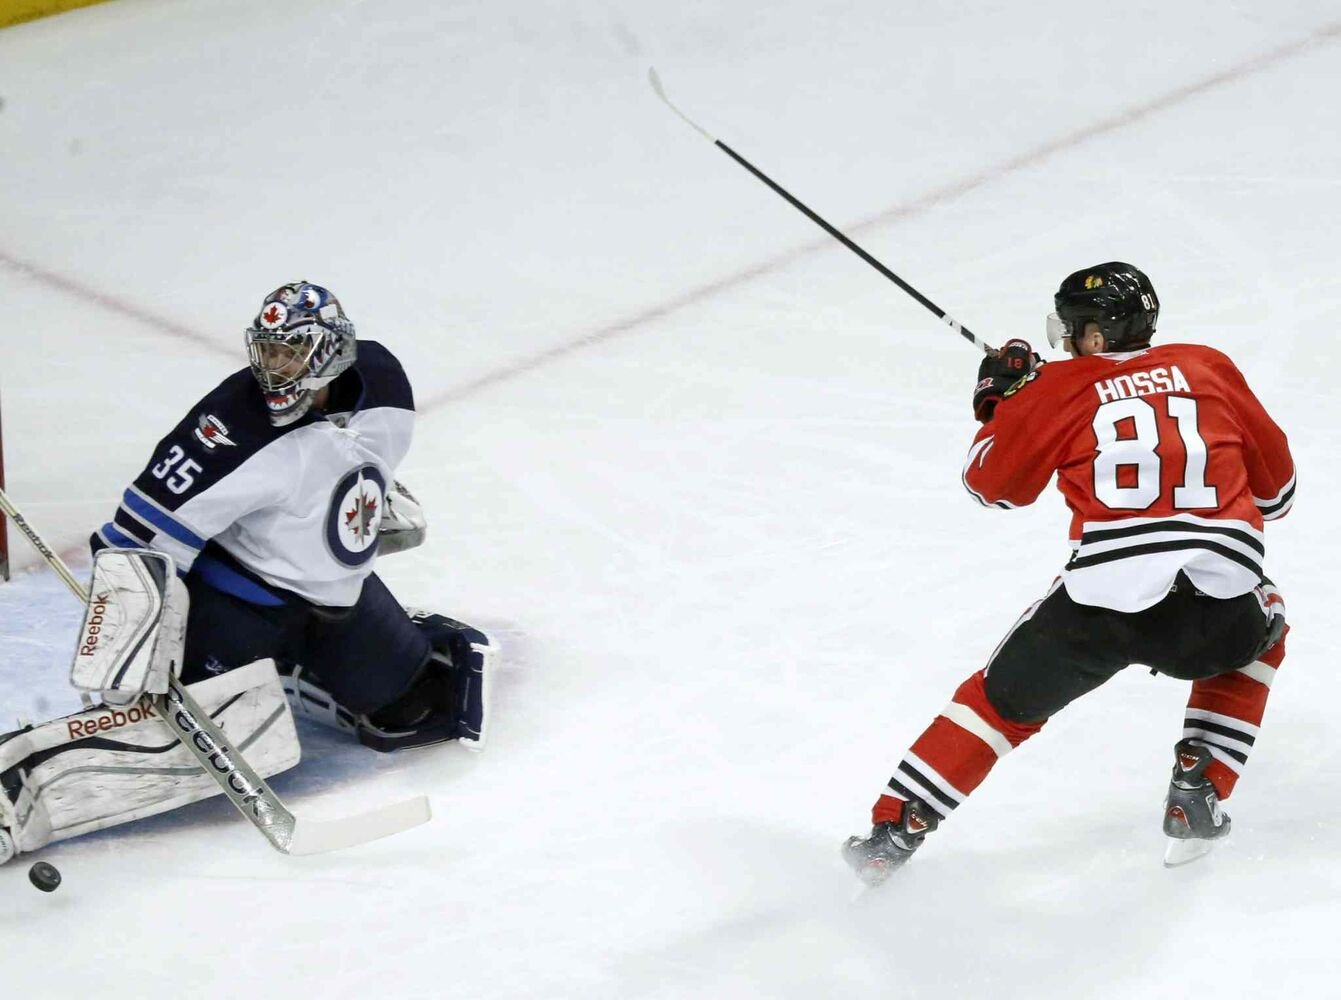 Jets goalie Al Montoya makes a save on a break away by Blackhawks forward Marian Hossa. in Chicago. (AP Photo/Charles Rex Arbogast) (CP)